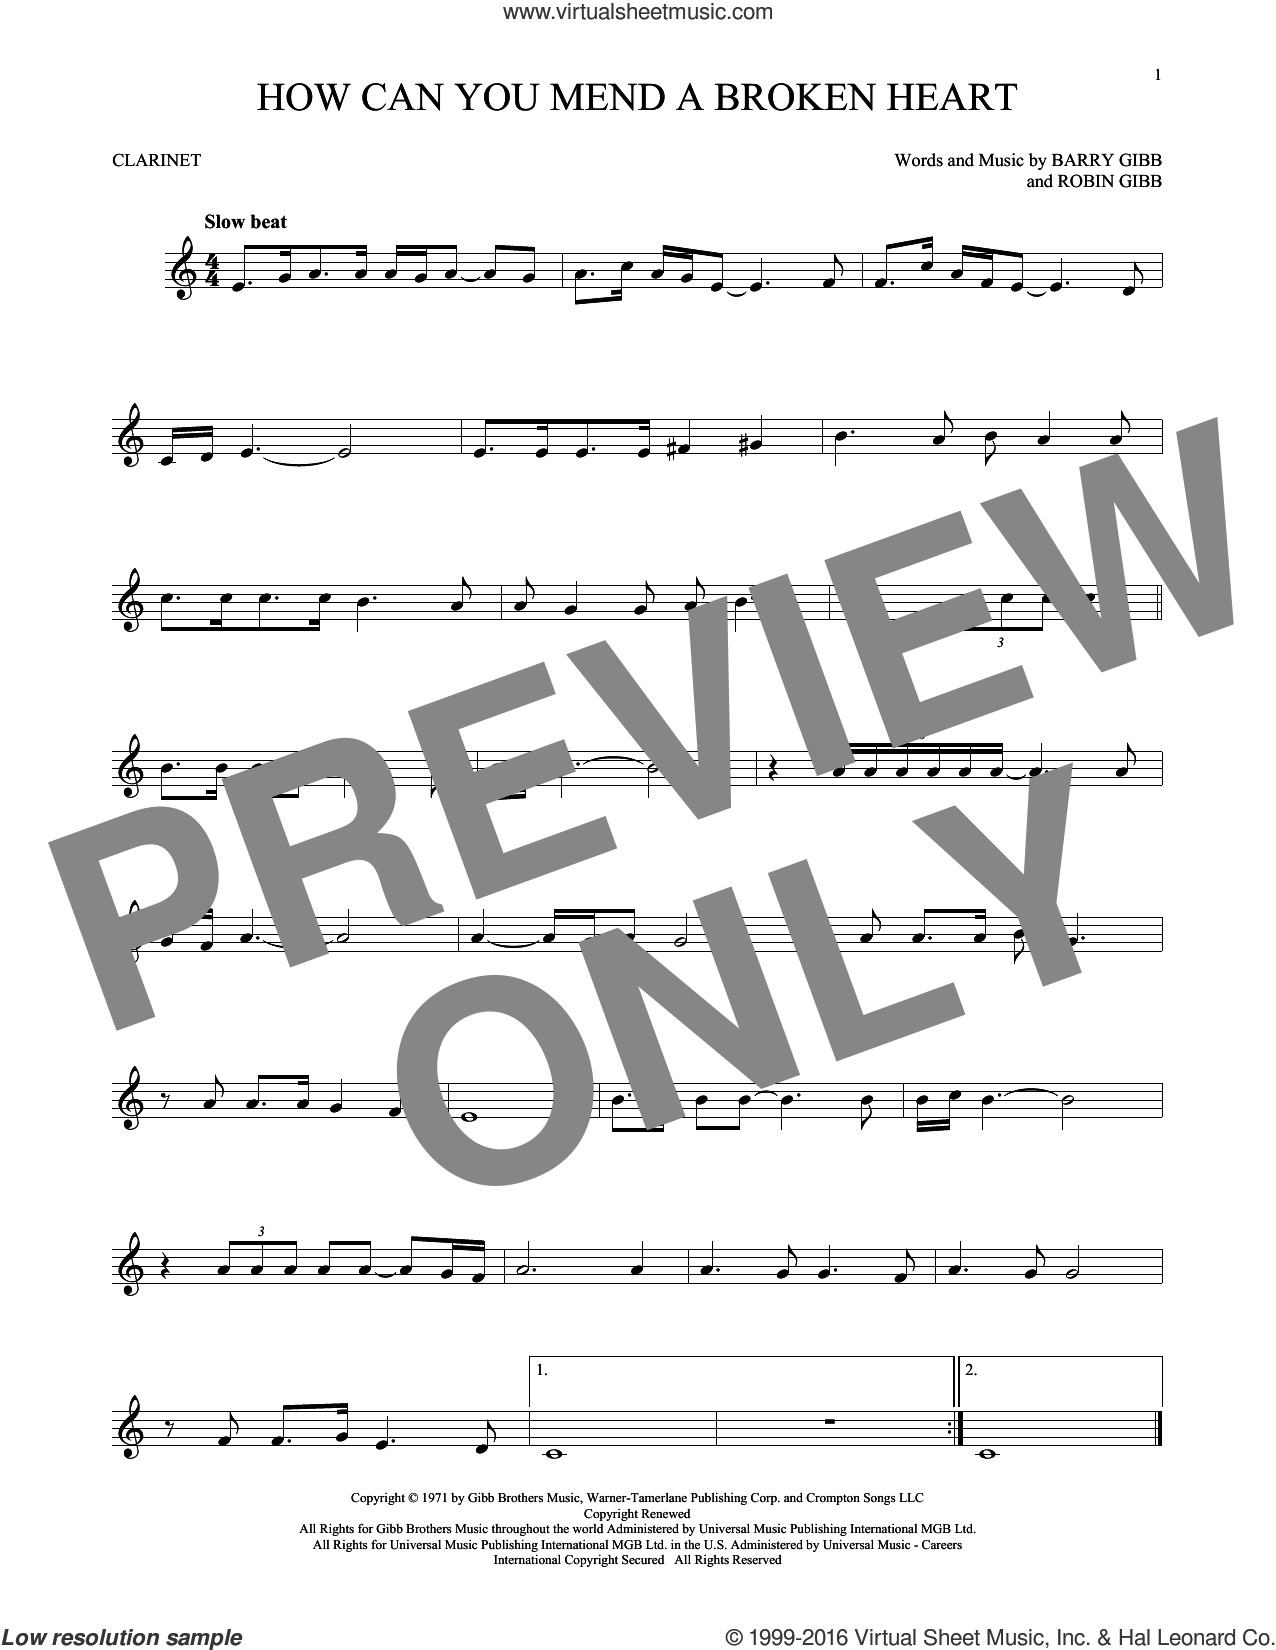 How Can You Mend A Broken Heart sheet music for clarinet solo by Robin Gibb, Bee Gees and Barry Gibb. Score Image Preview.